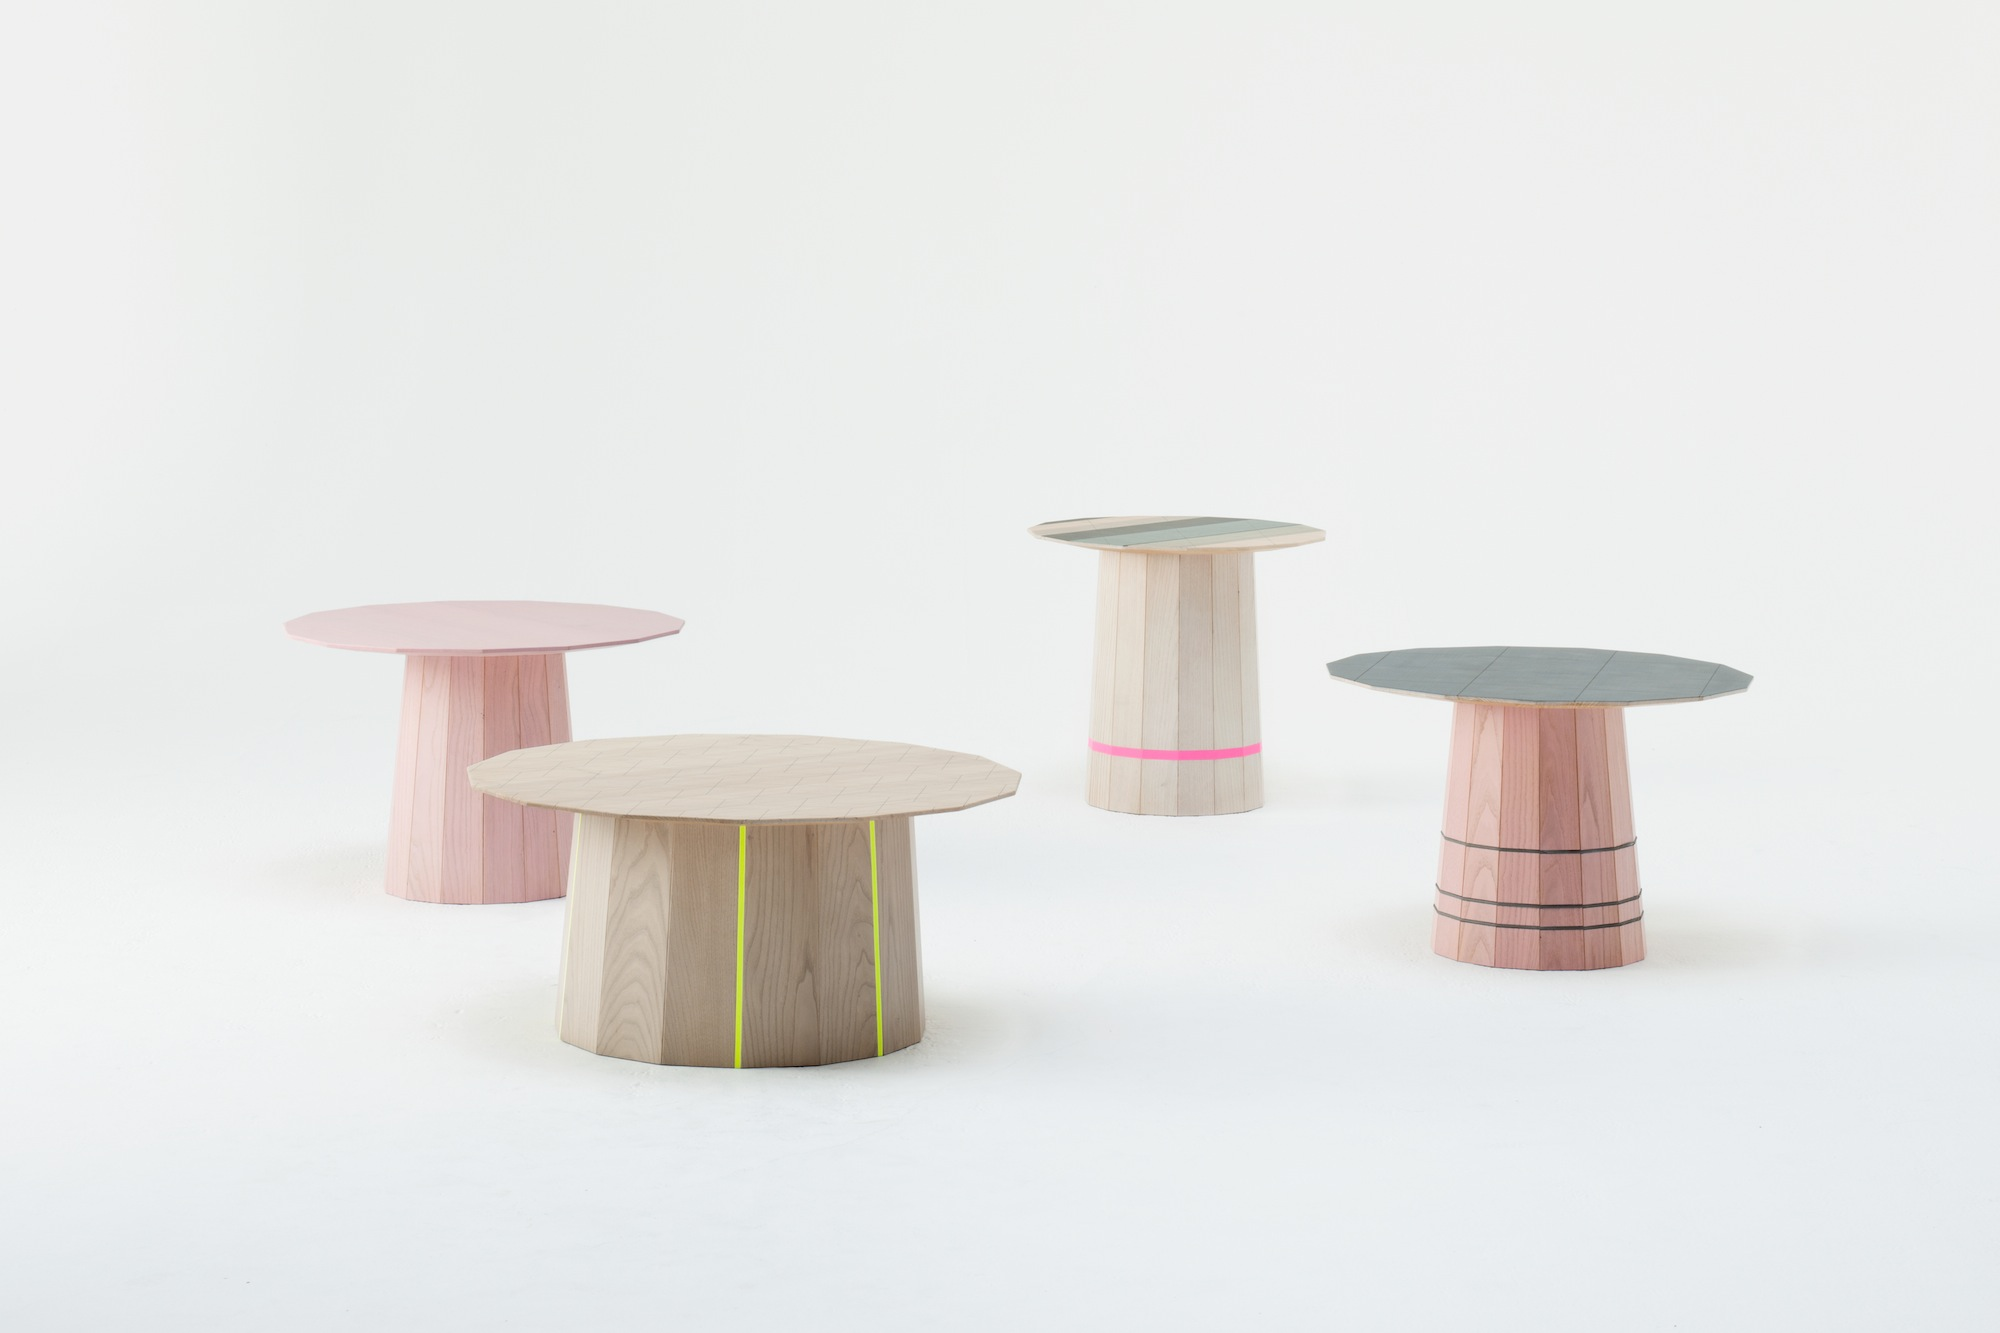 3. Colour Wood for Karimoku New Standard, Japan. Photography Takumi Ota